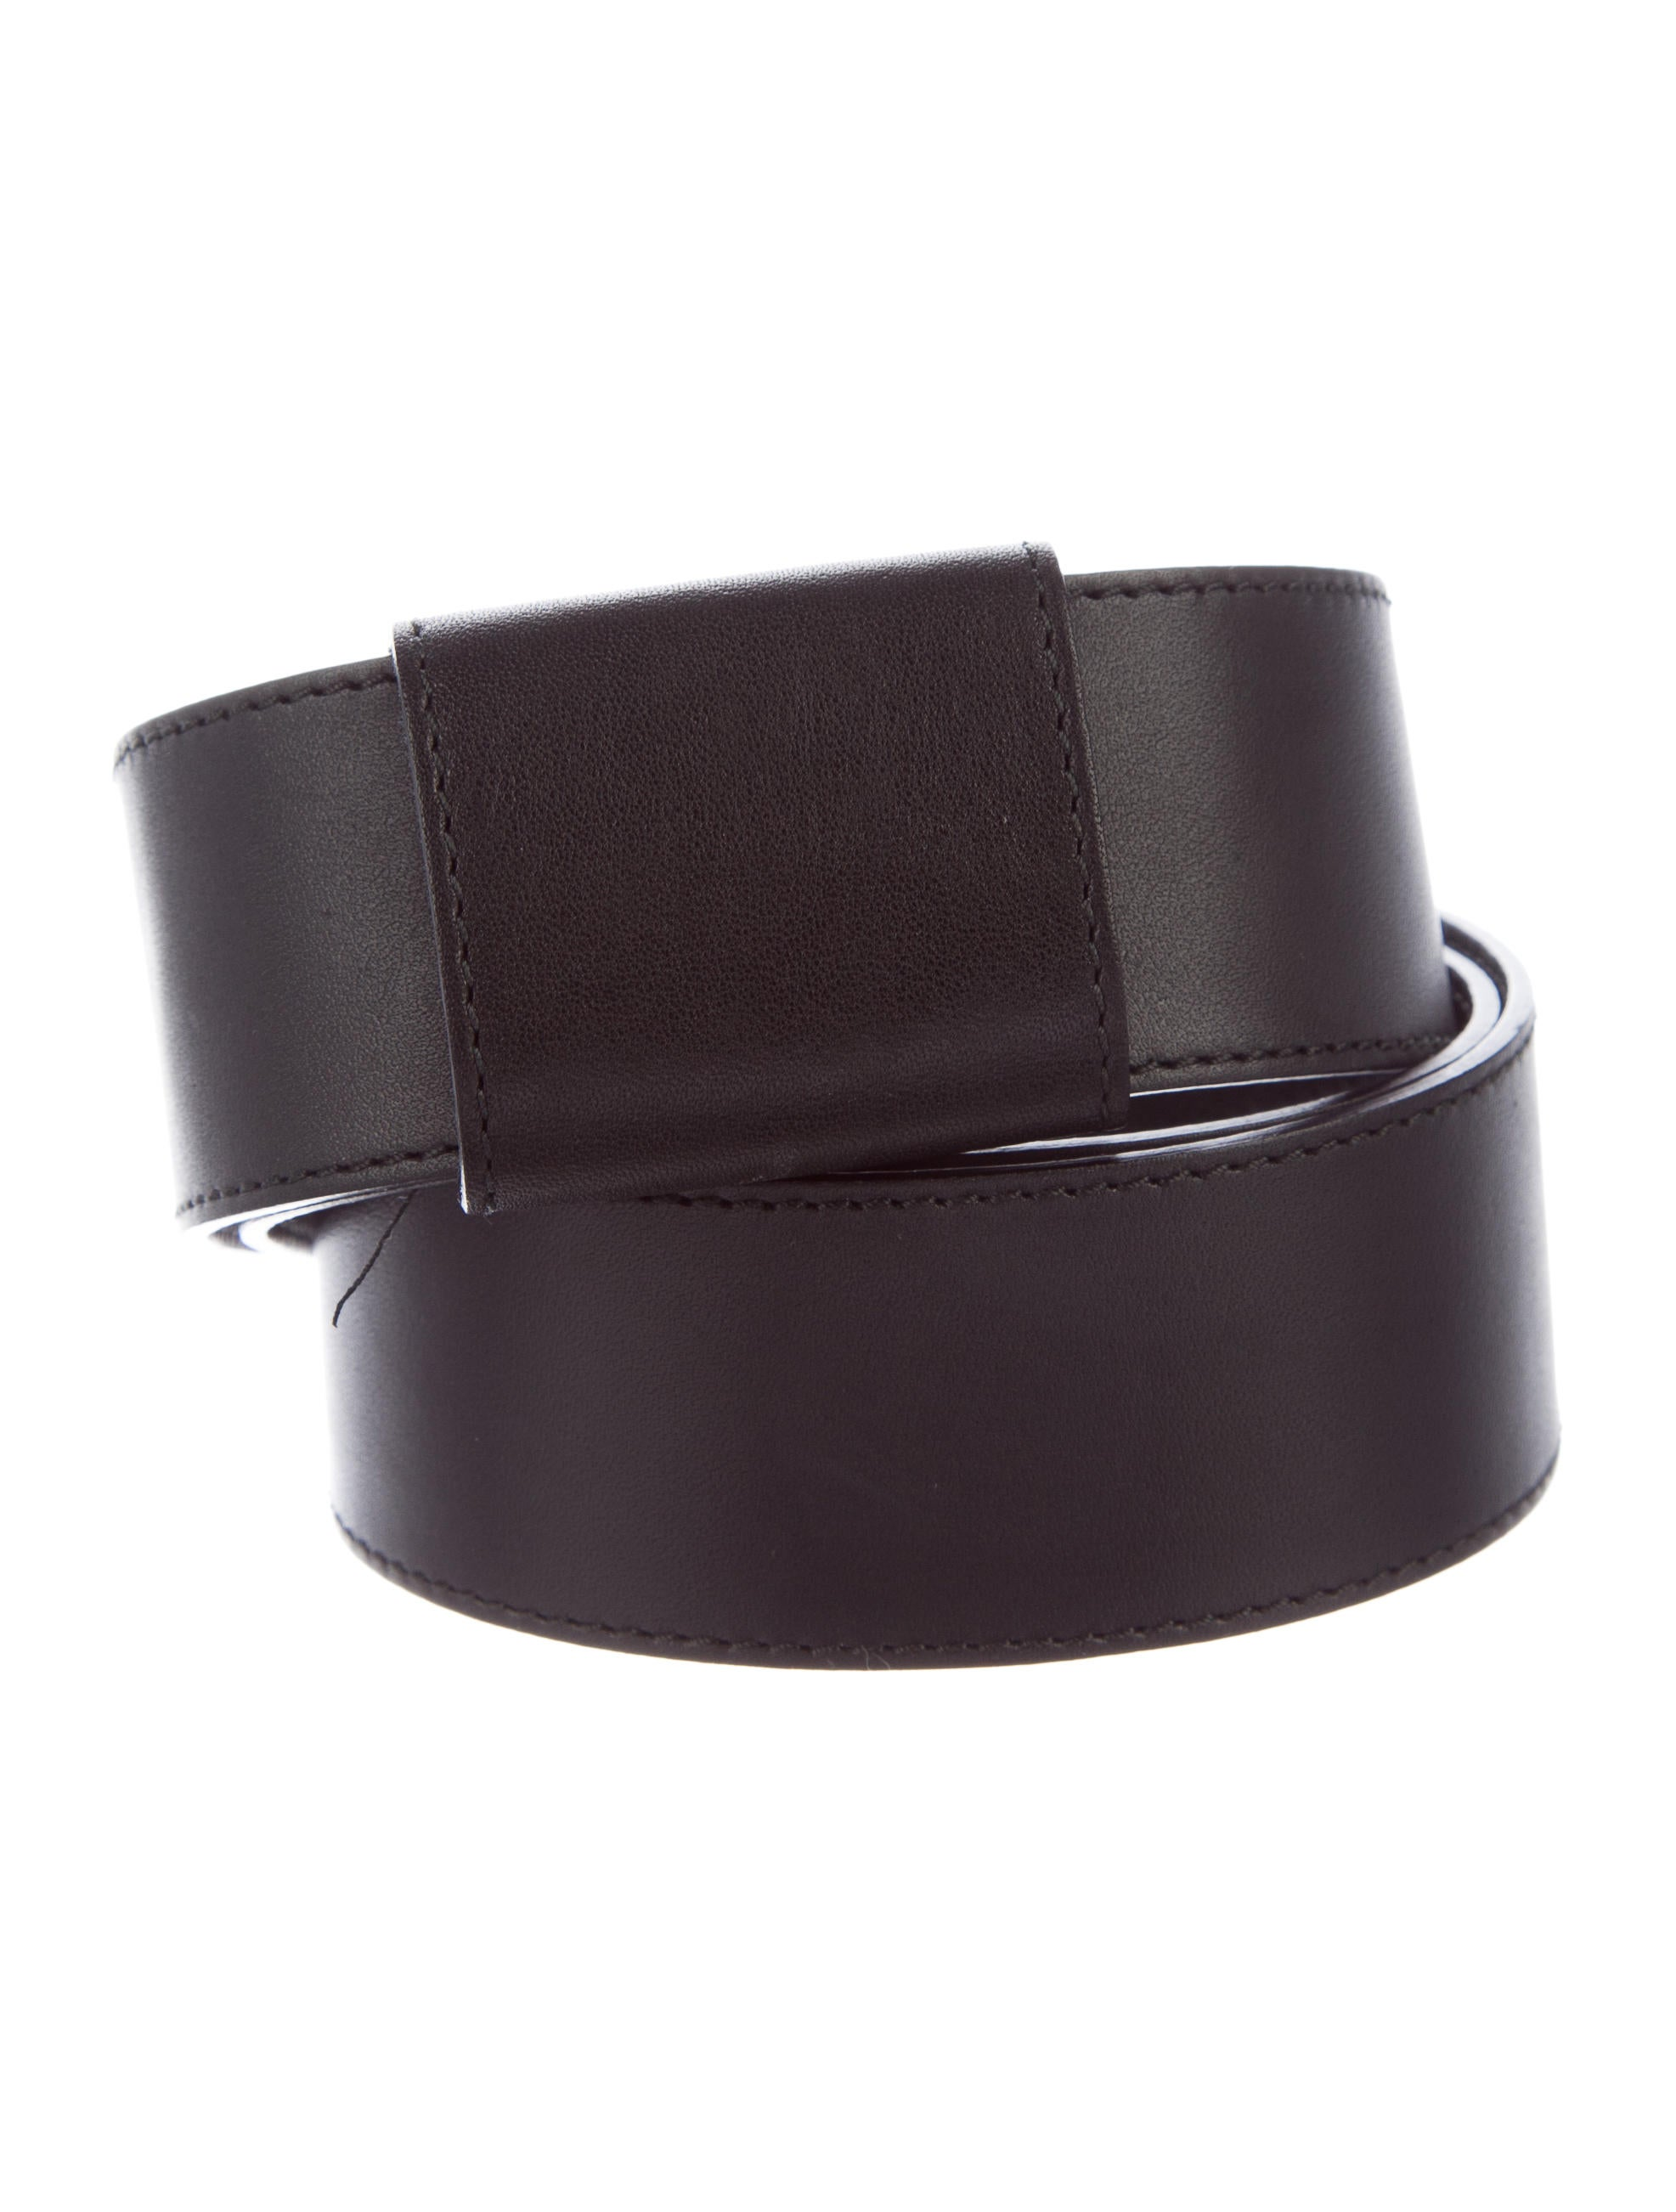 akris leather buckle belt accessories akr33019 the